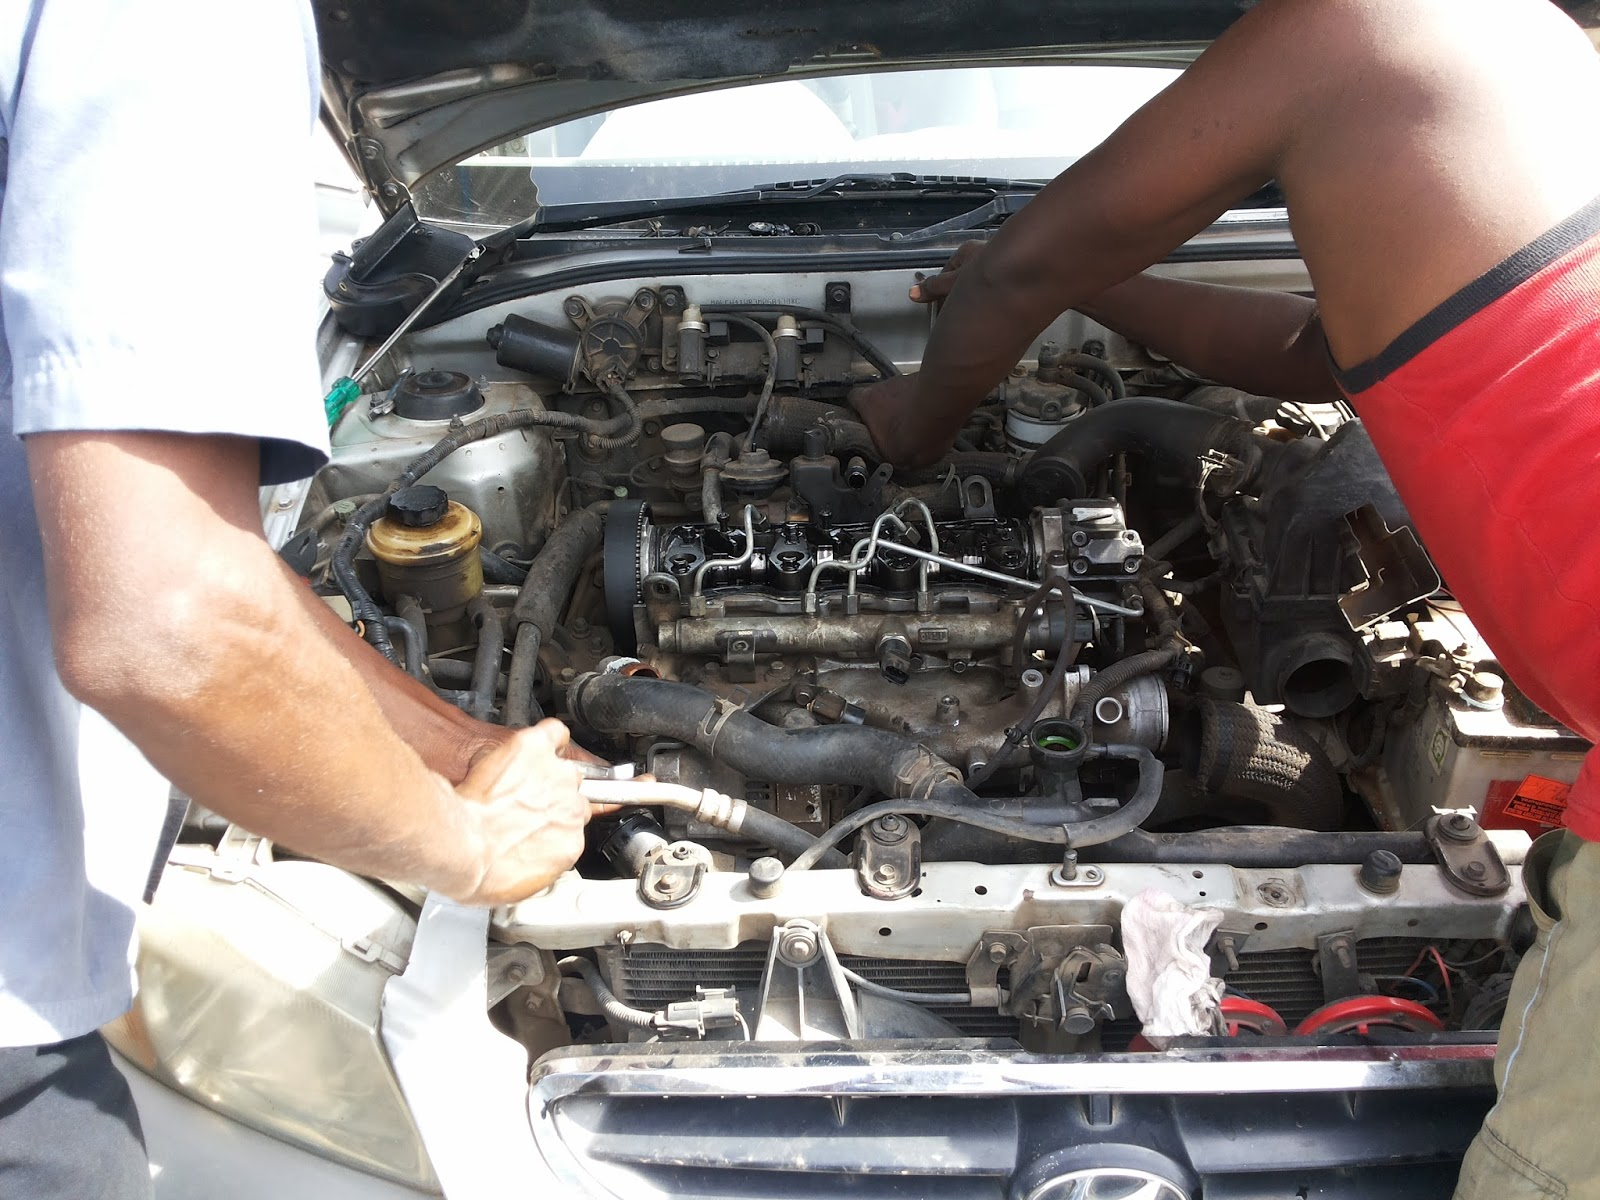 Hyundai Accent Fuel Filter Replacement Below Picture Engine Body Cylinder With Assembly 1600x1200